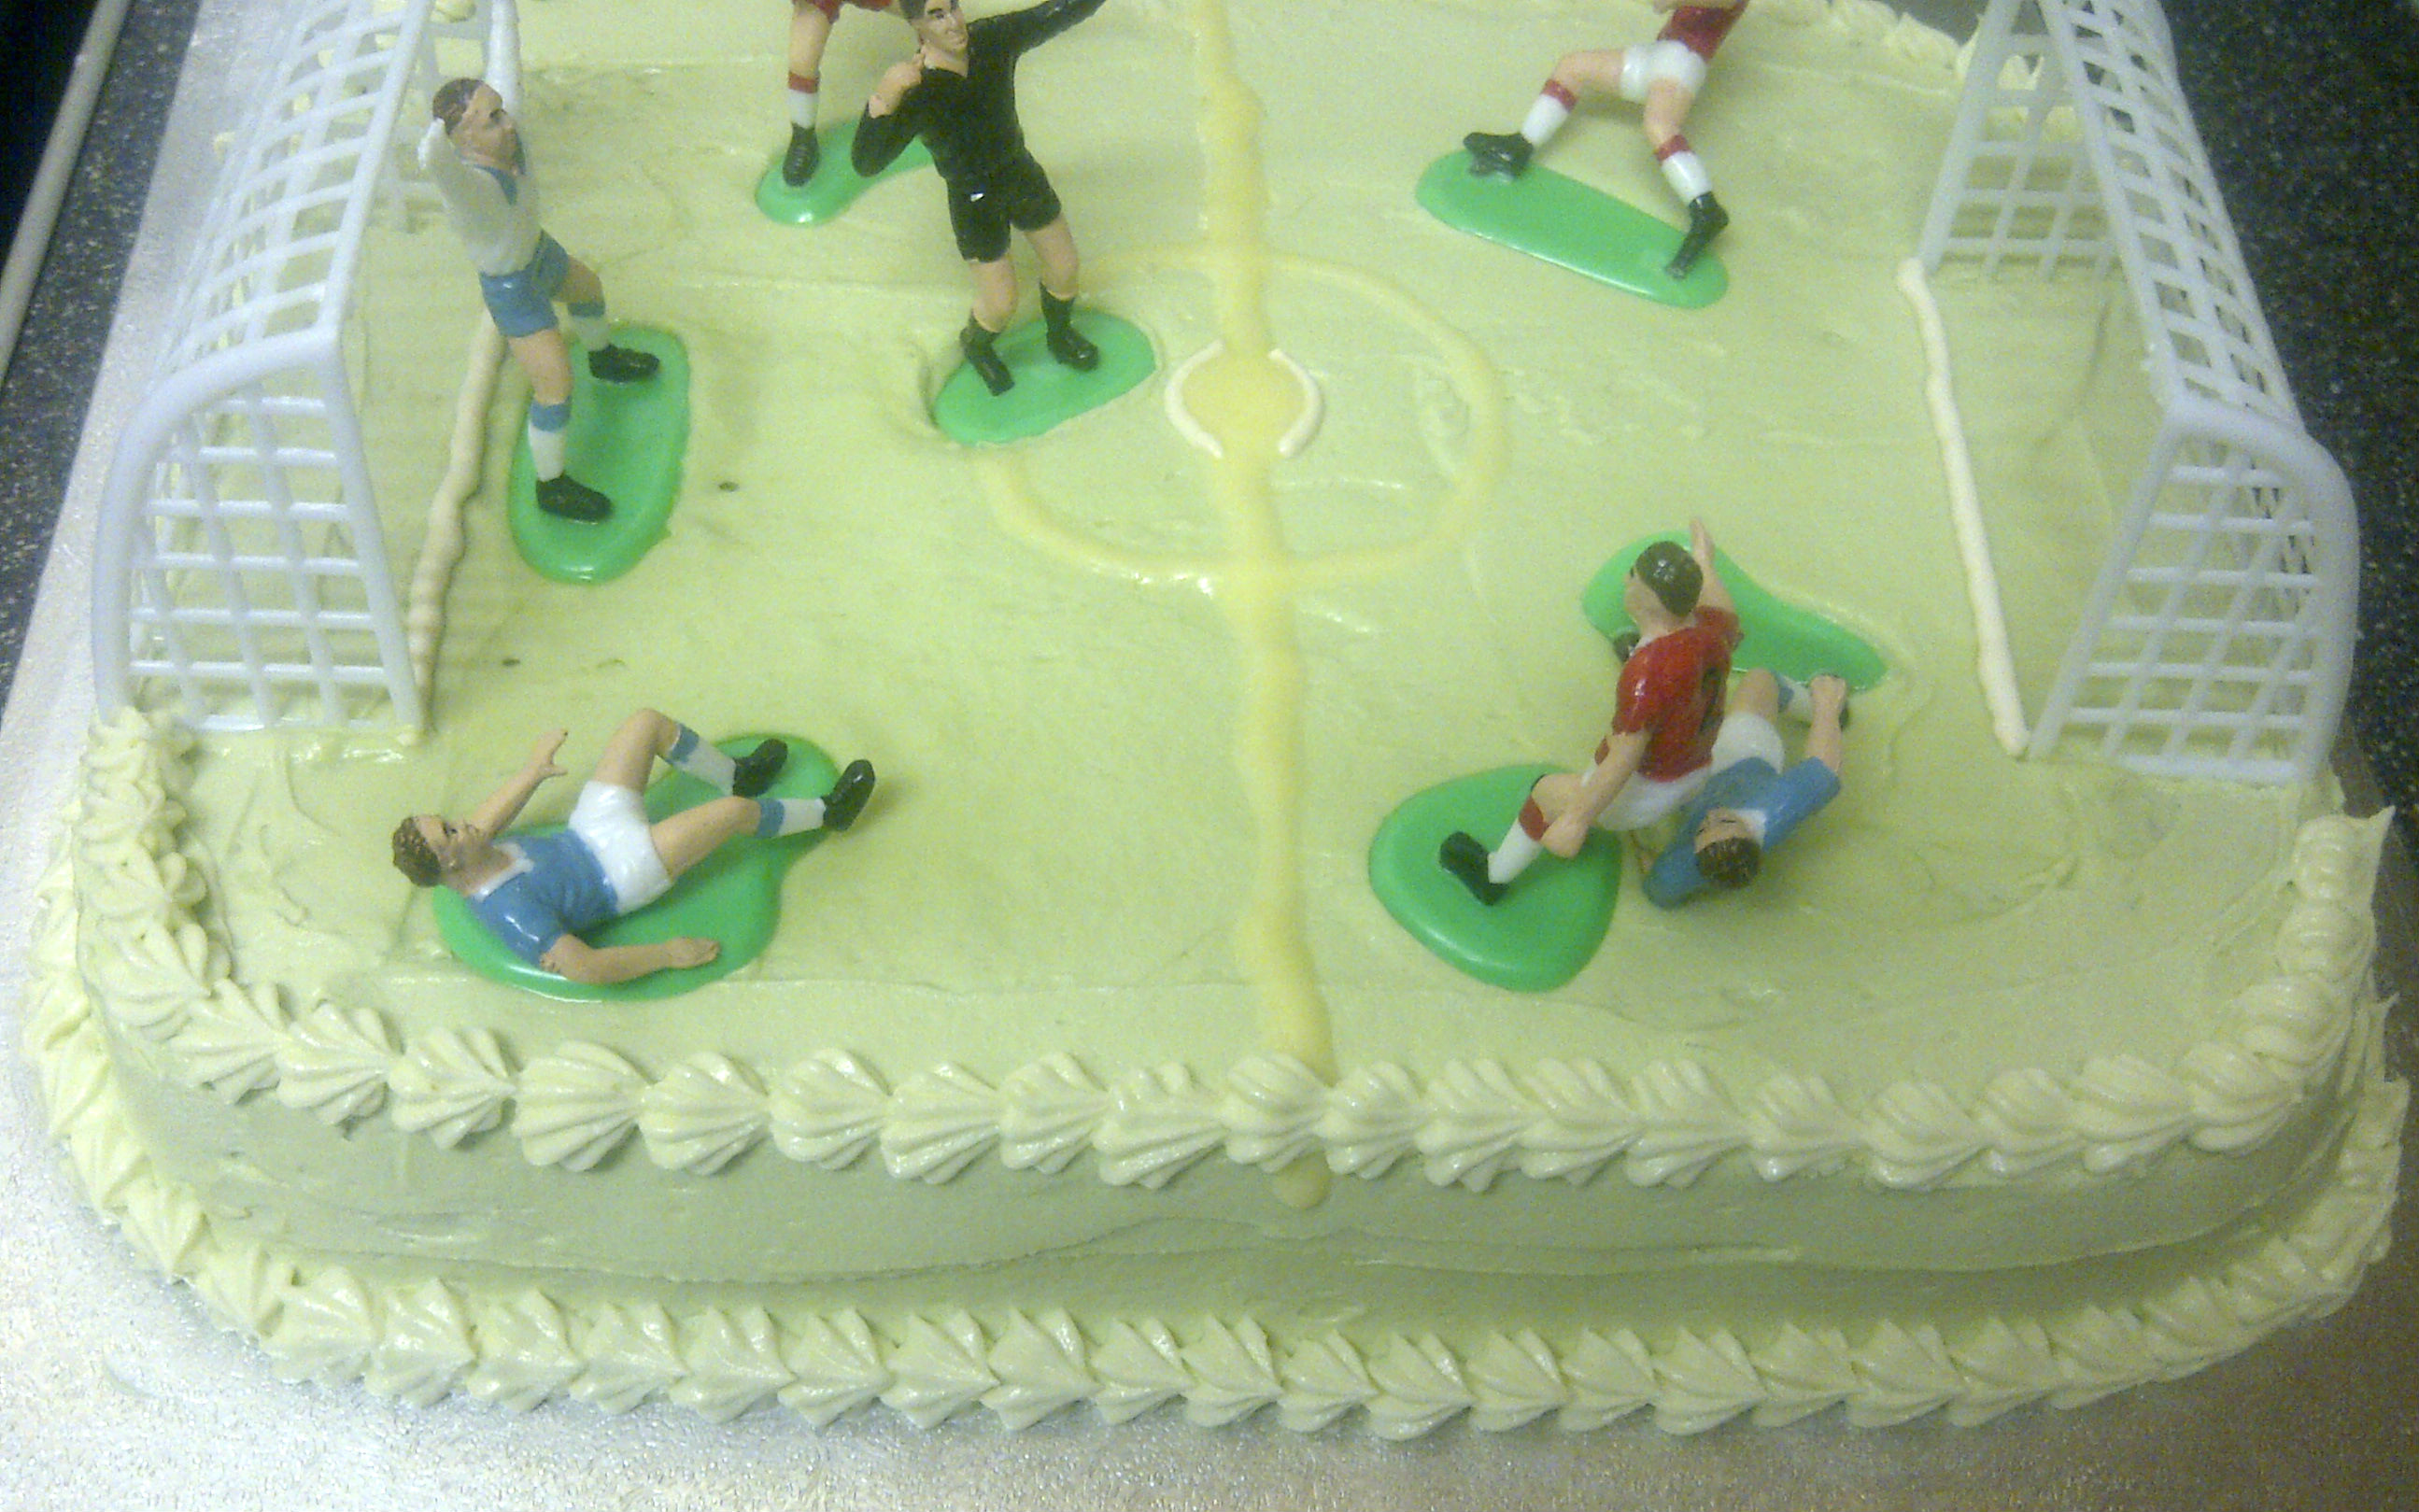 Football Pitch Cake Bunny Kitchen